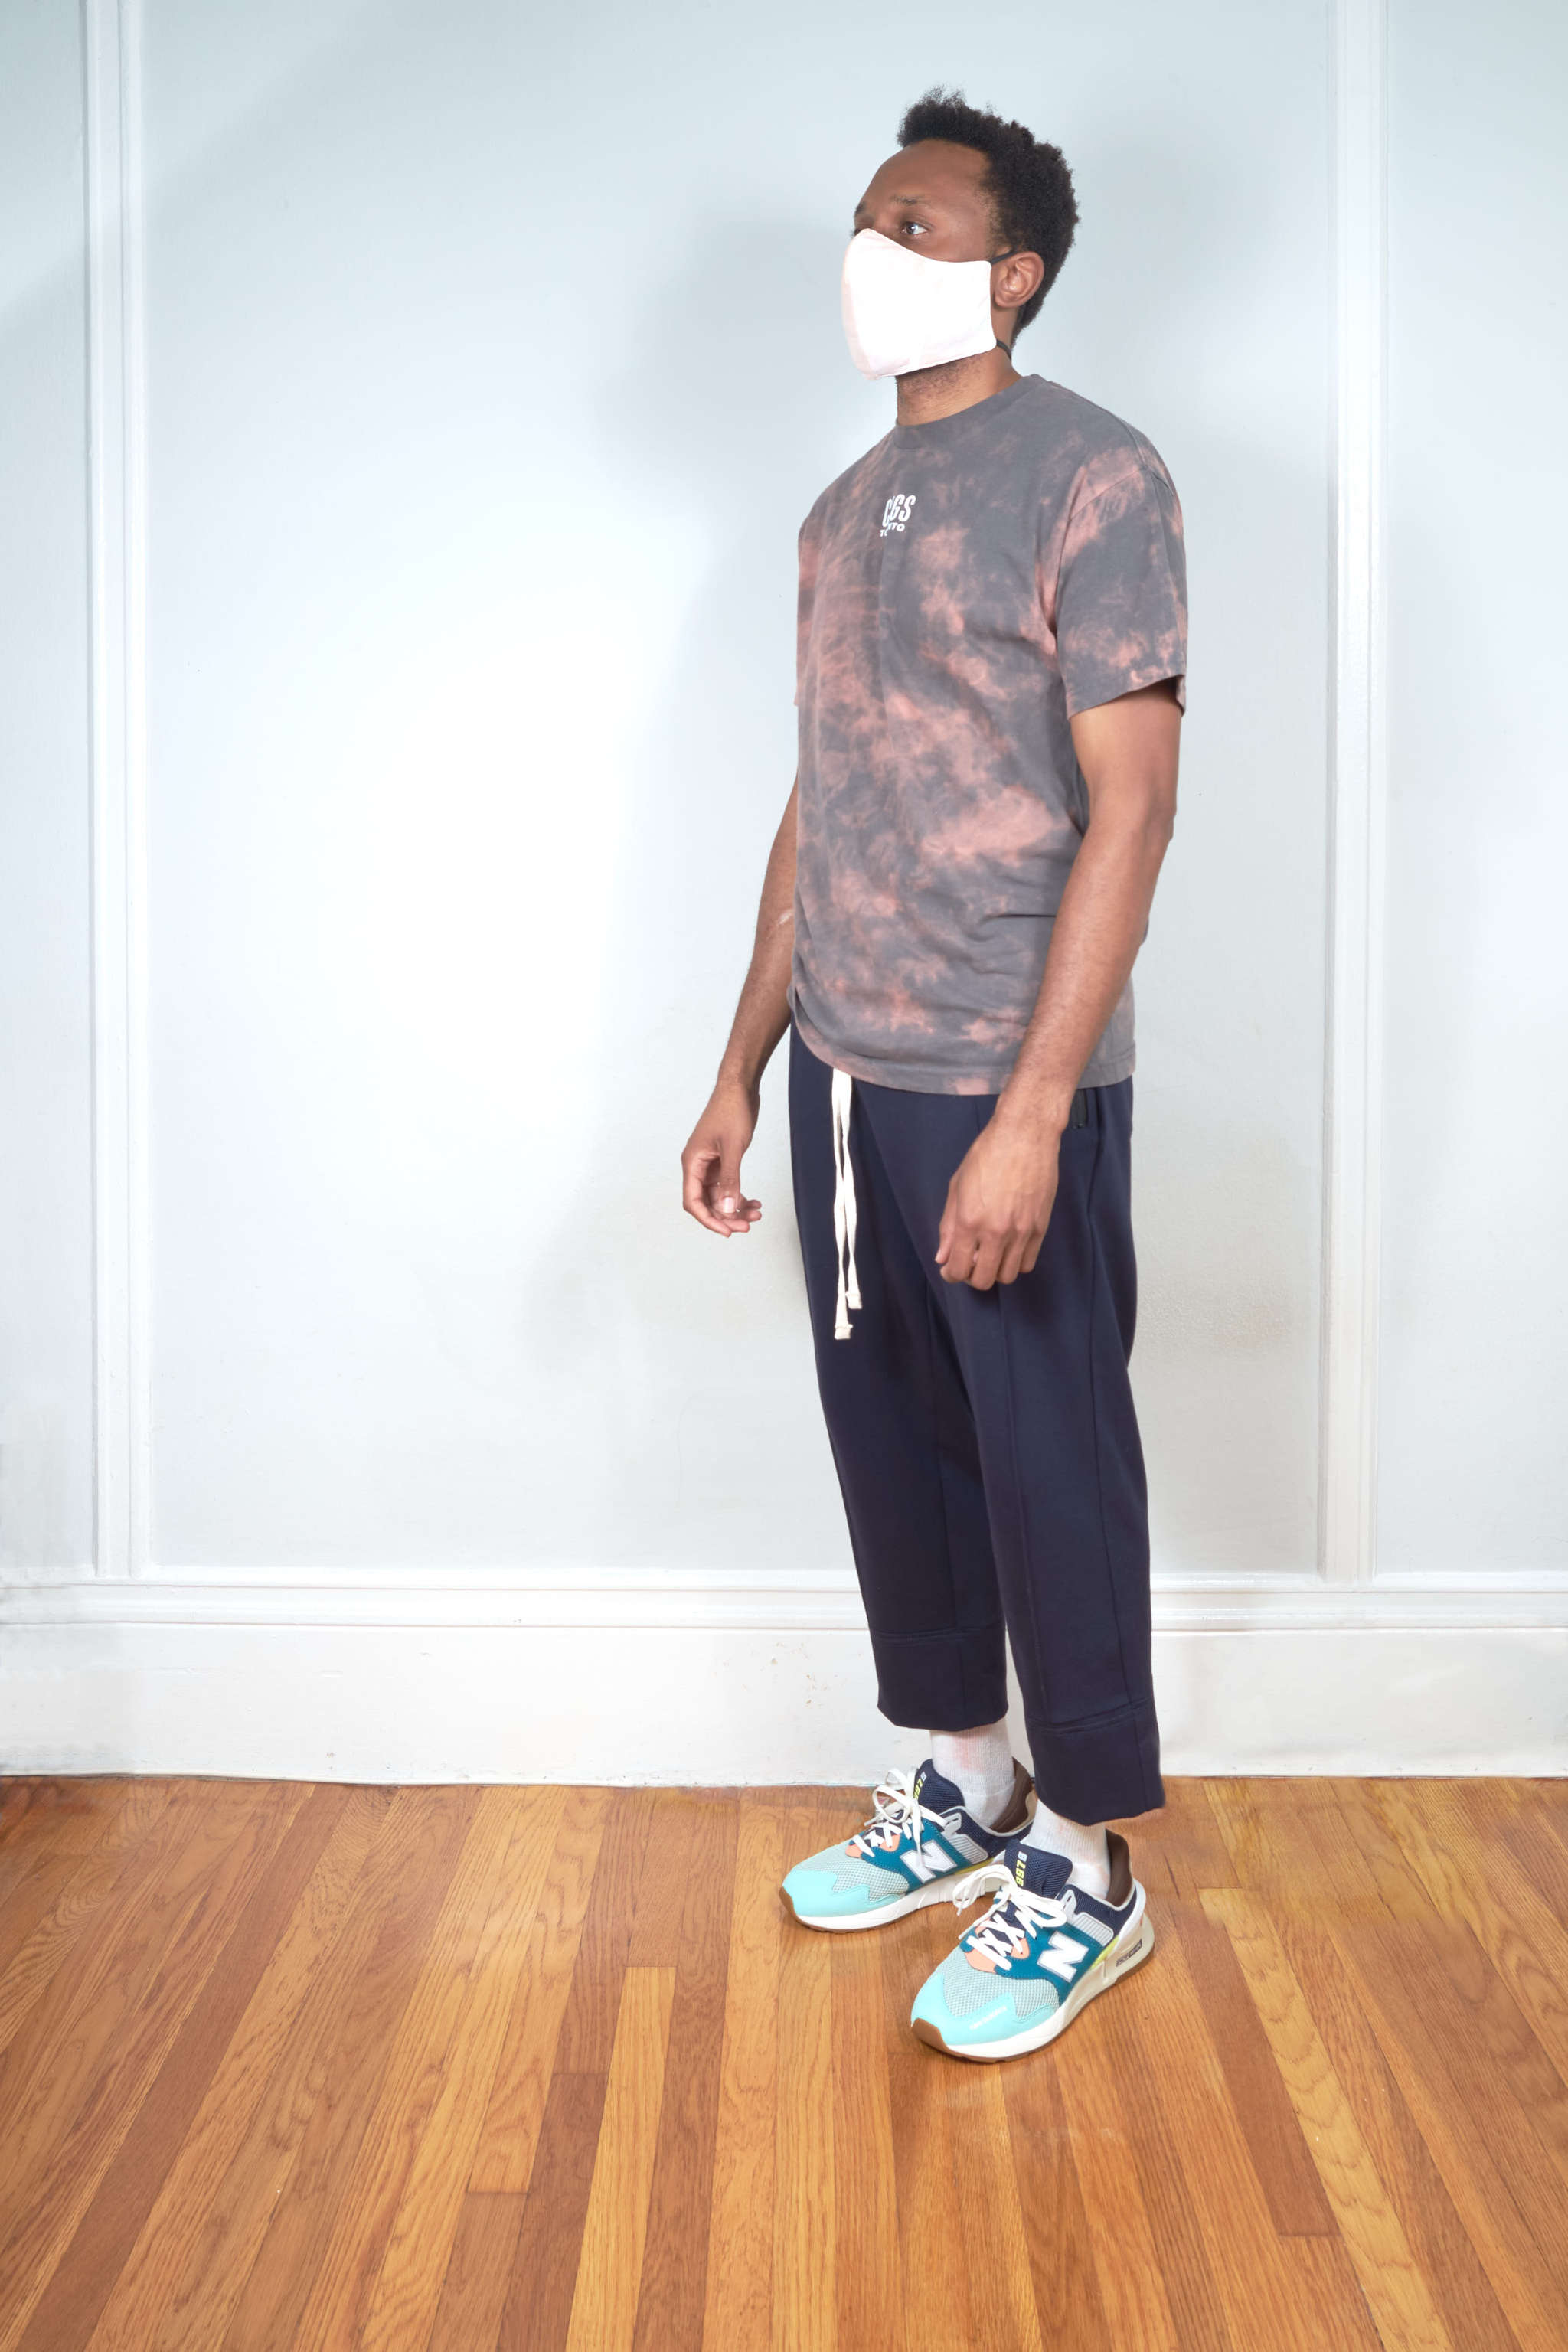 Cogs Shop | The First Summer | Cropped Pin Tuck Pants fit photo